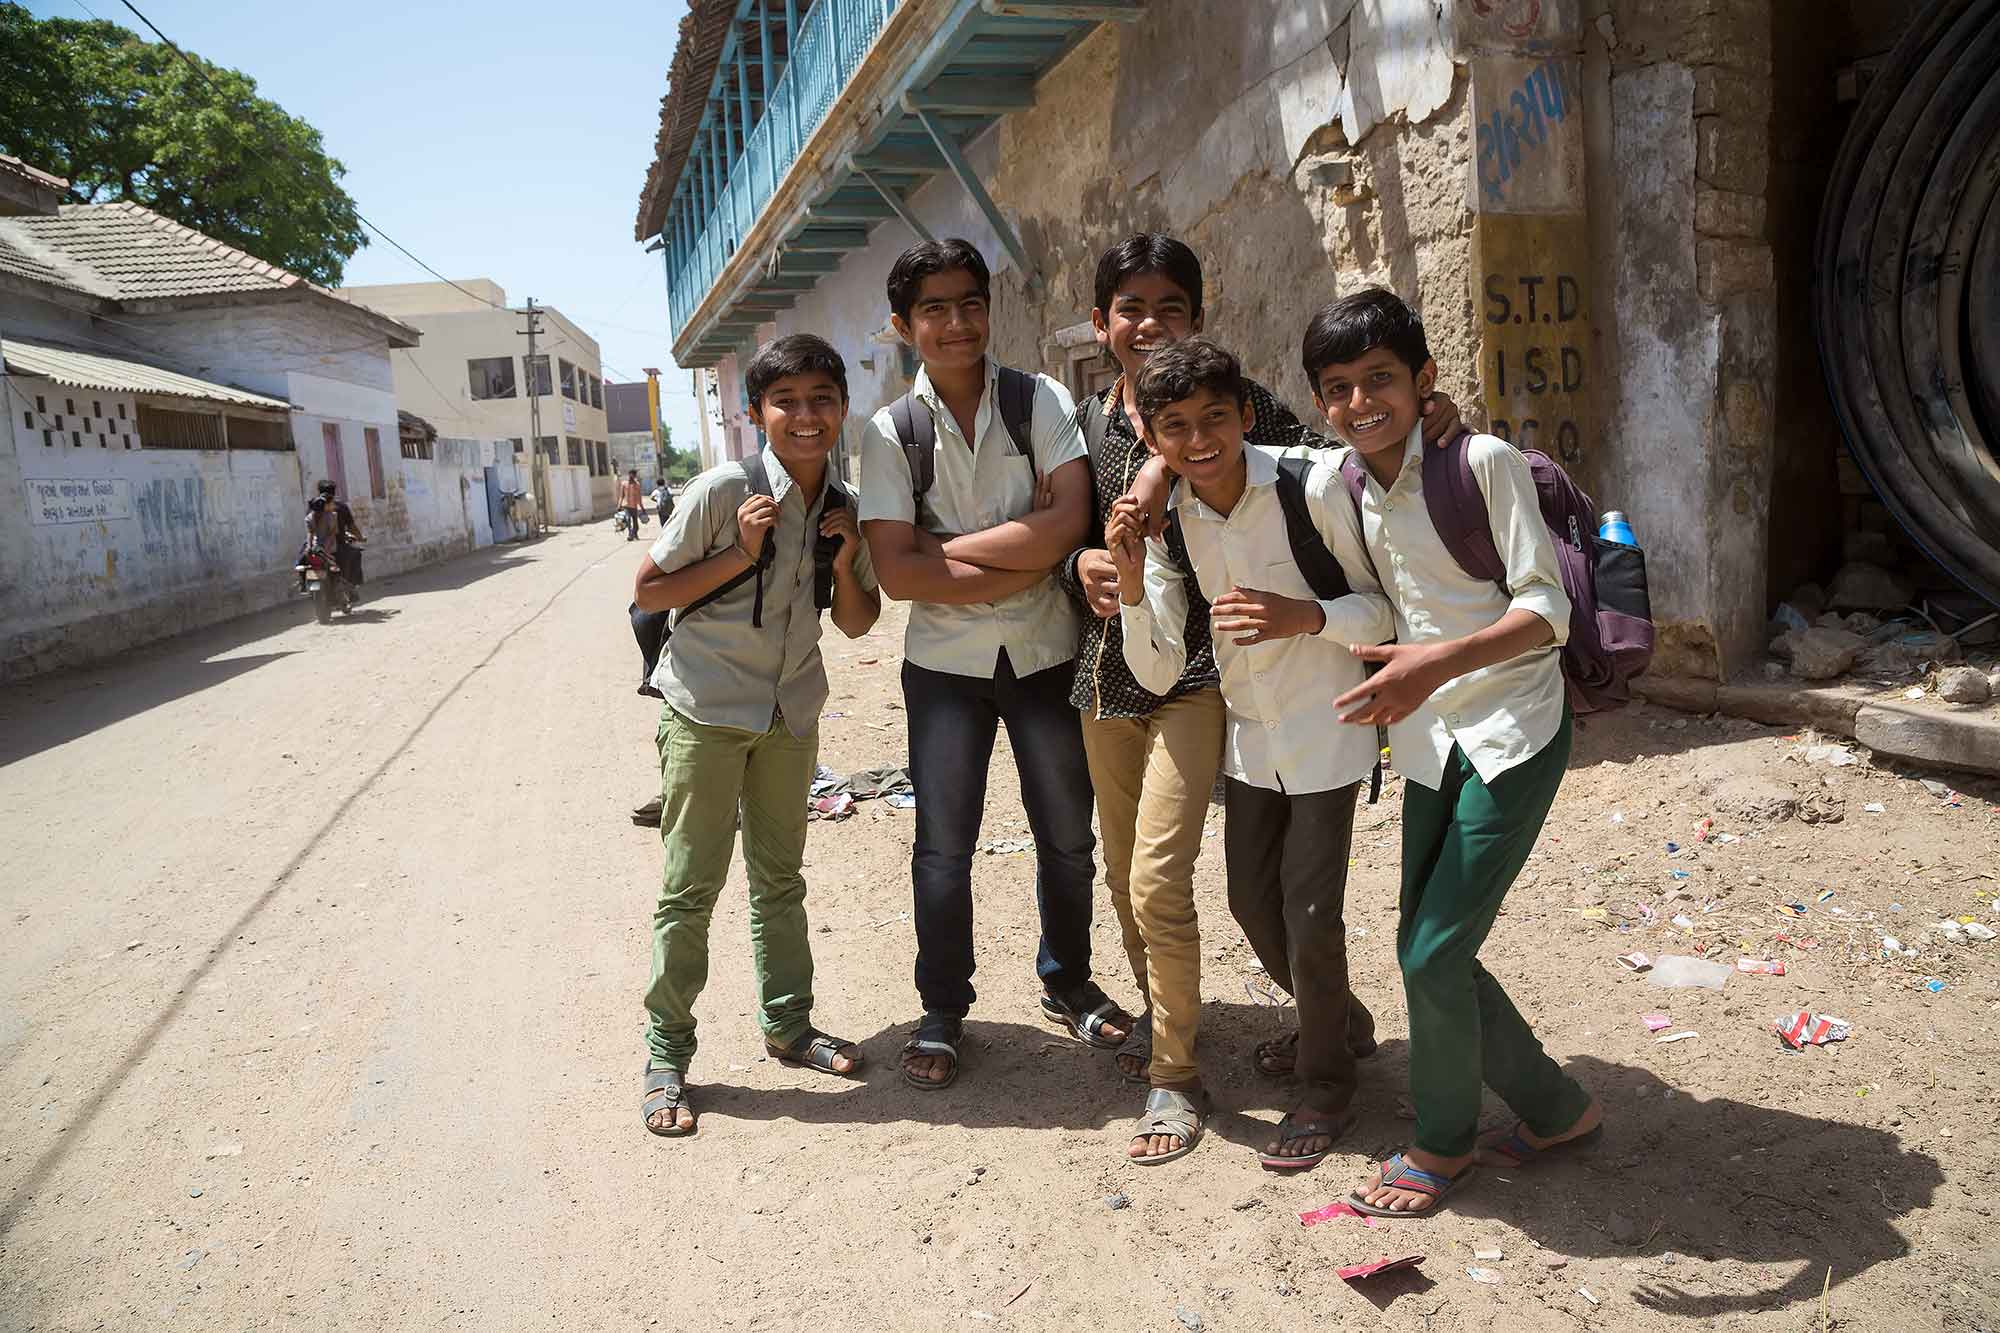 school-boys-buhj-gujarat-india